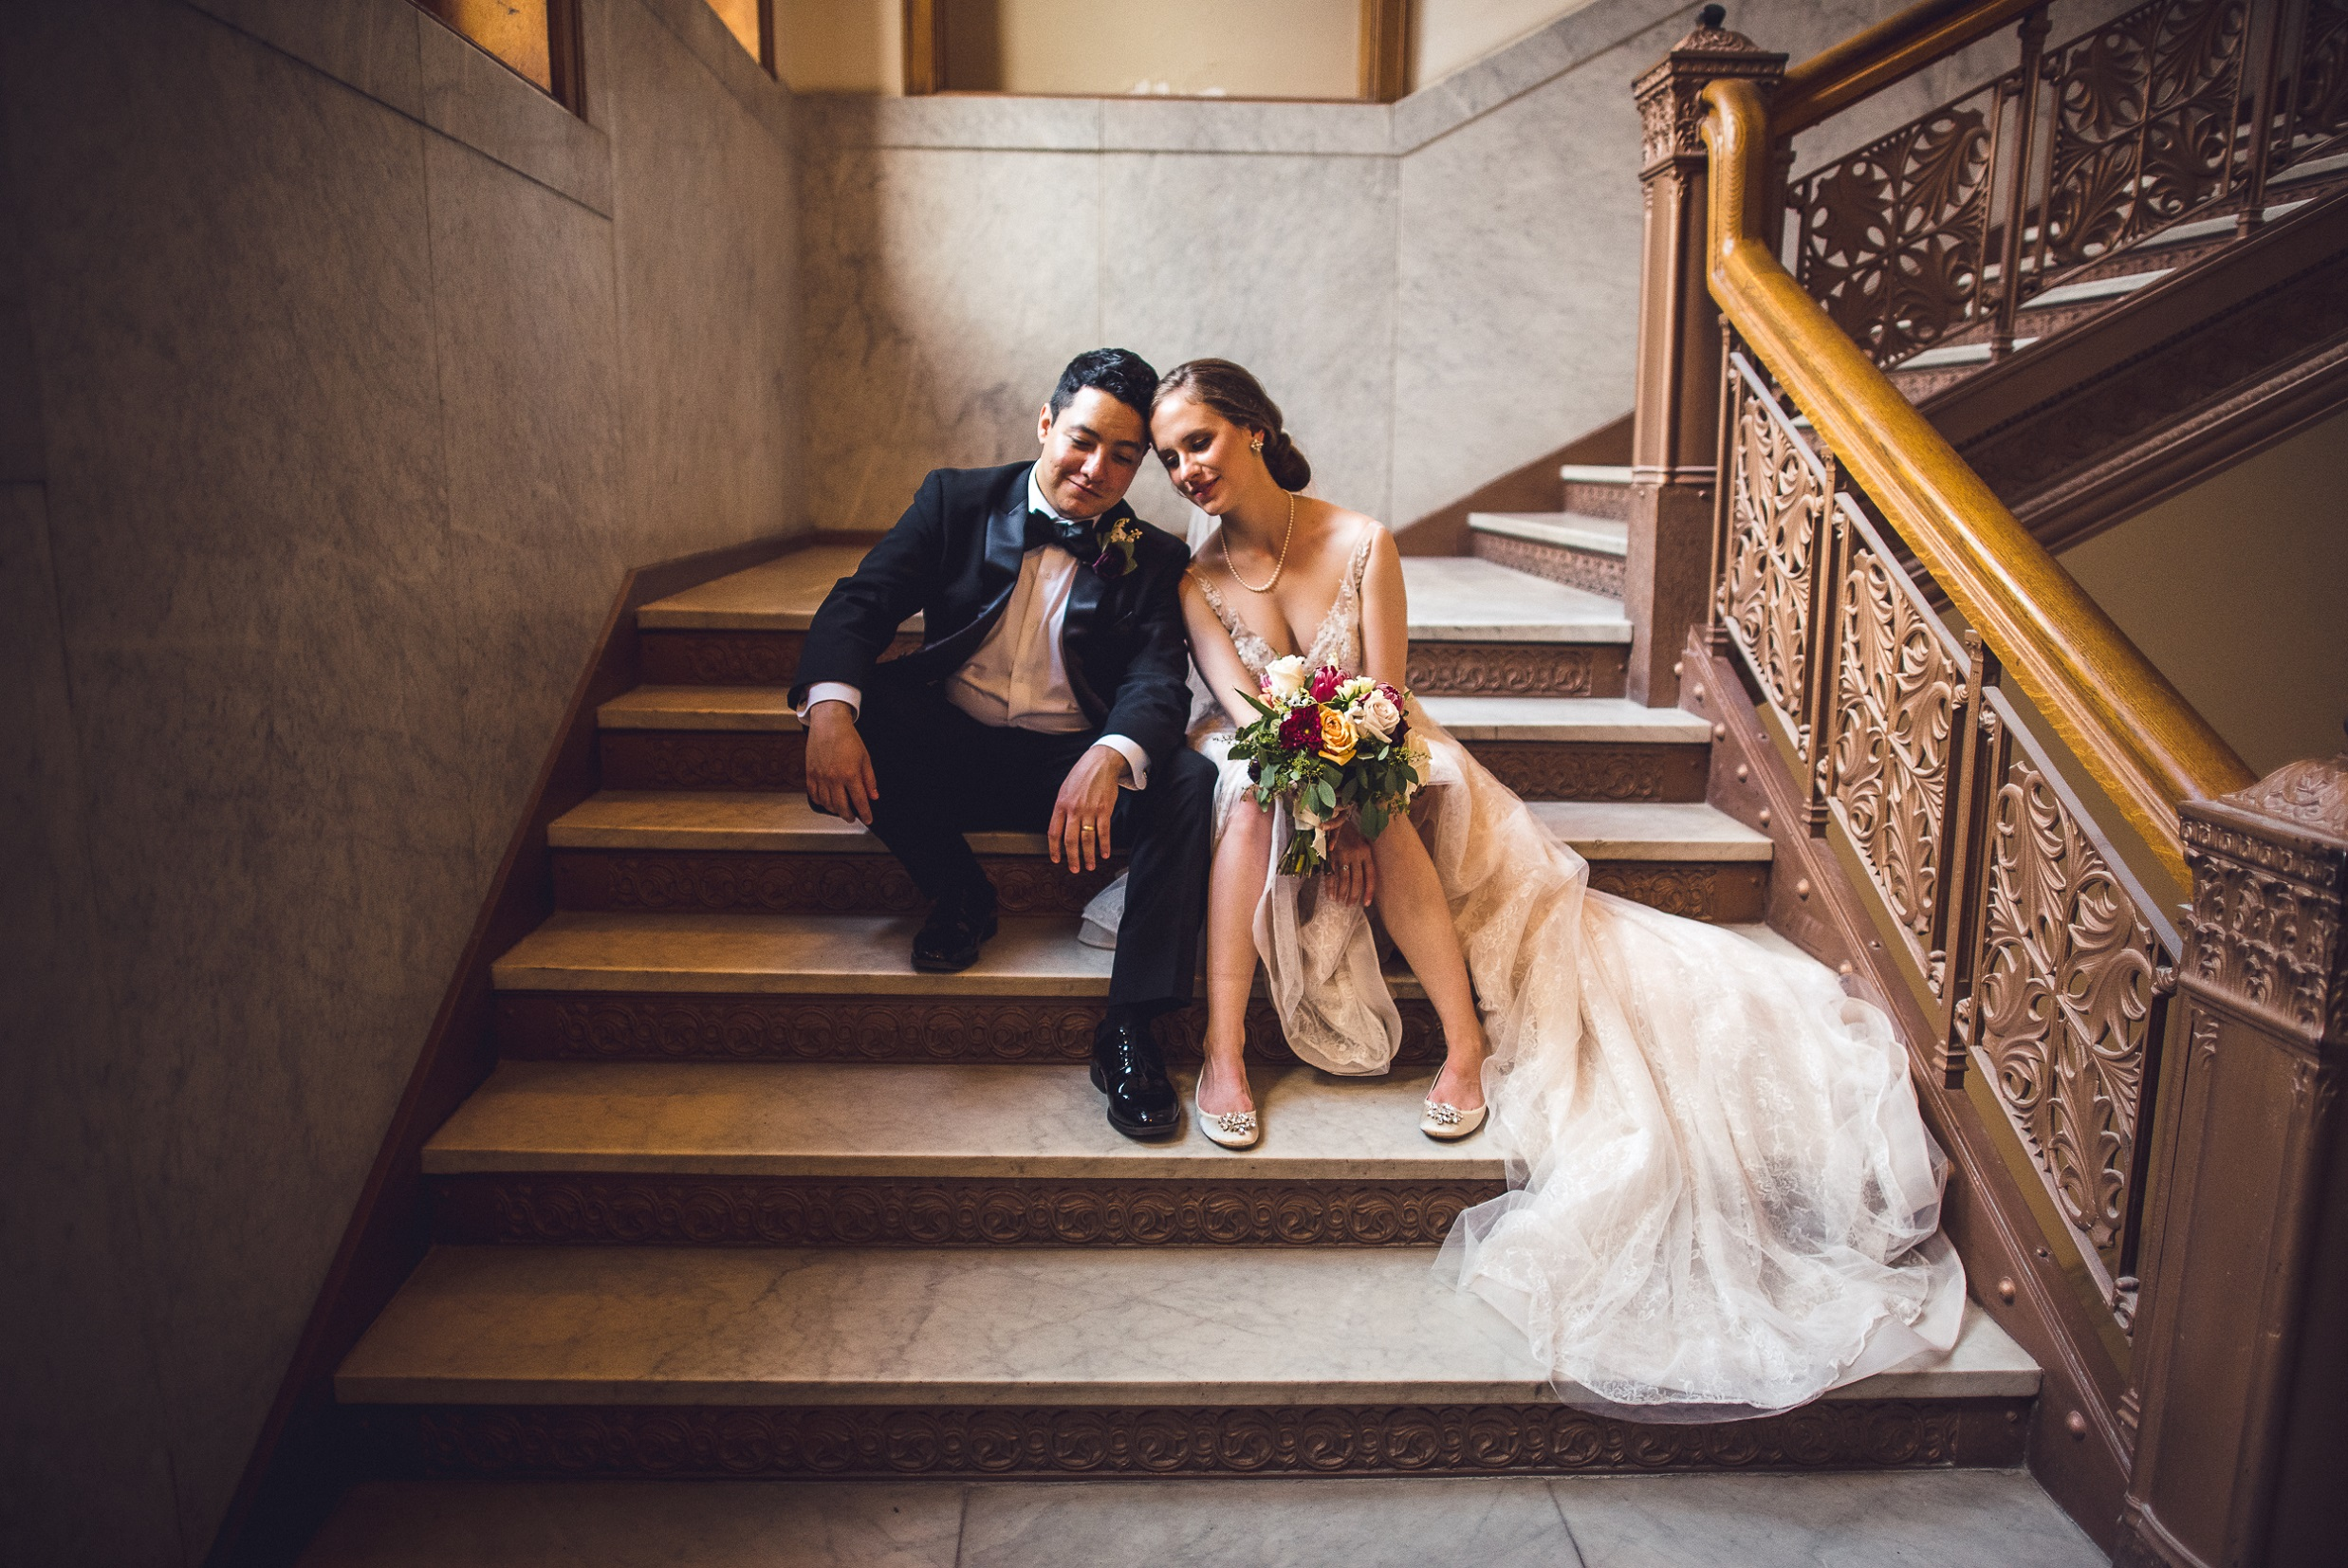 01-bride-and-groom-stairs-chicago-wedding-divno-photography